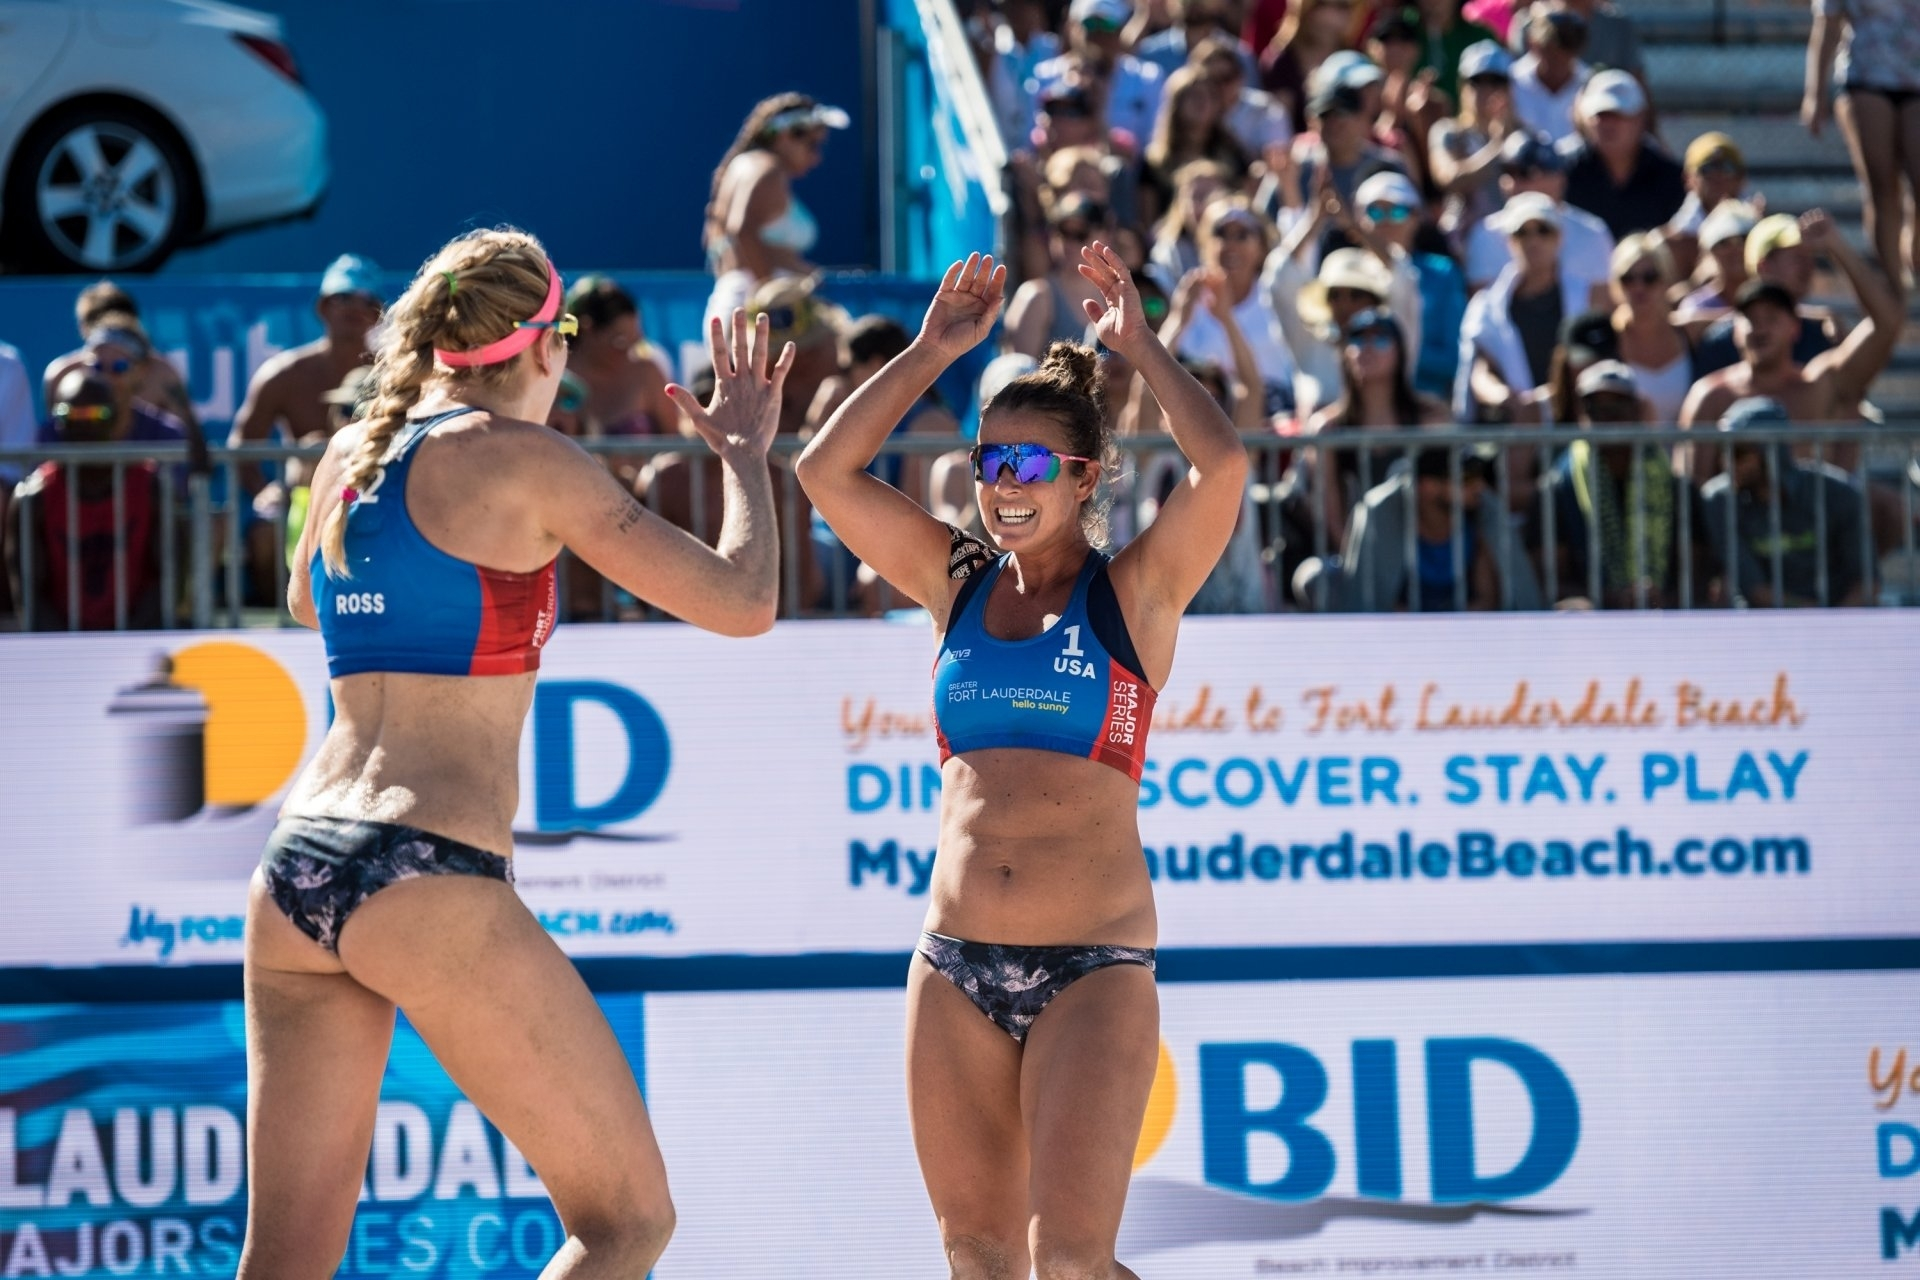 Brooke Sweat (right) celebrates during the Fort Lauderdale Major, where she and Summer Ross finished third